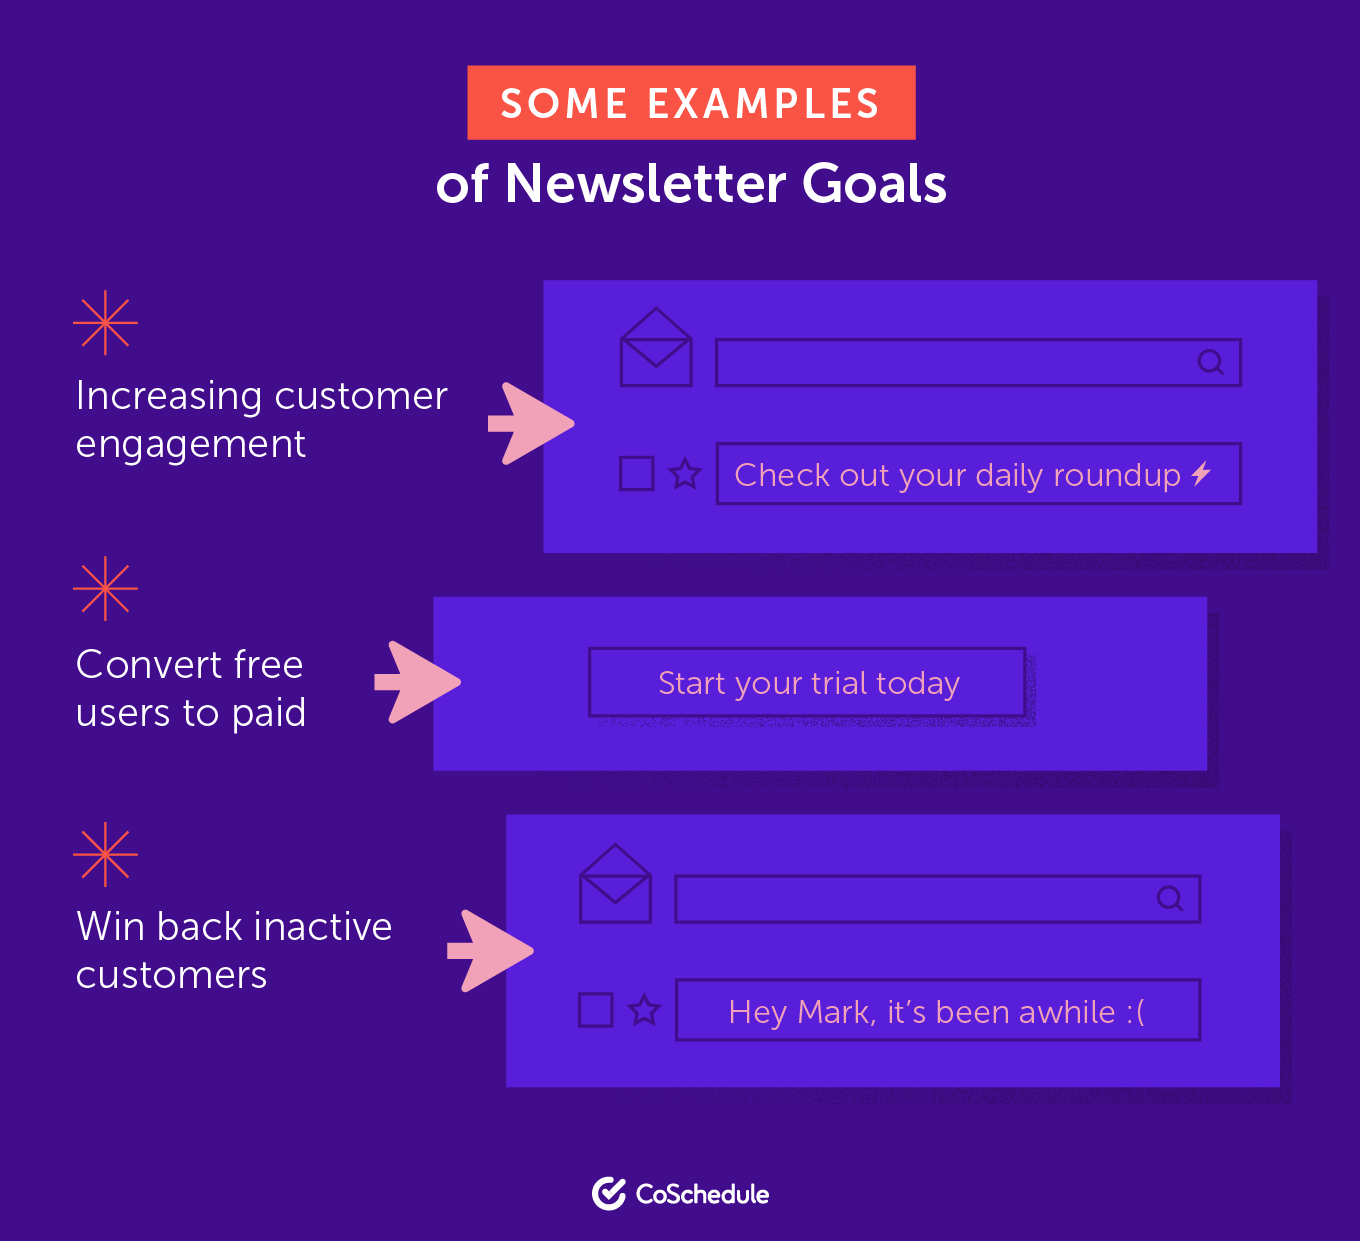 Some examples of newsletter goals